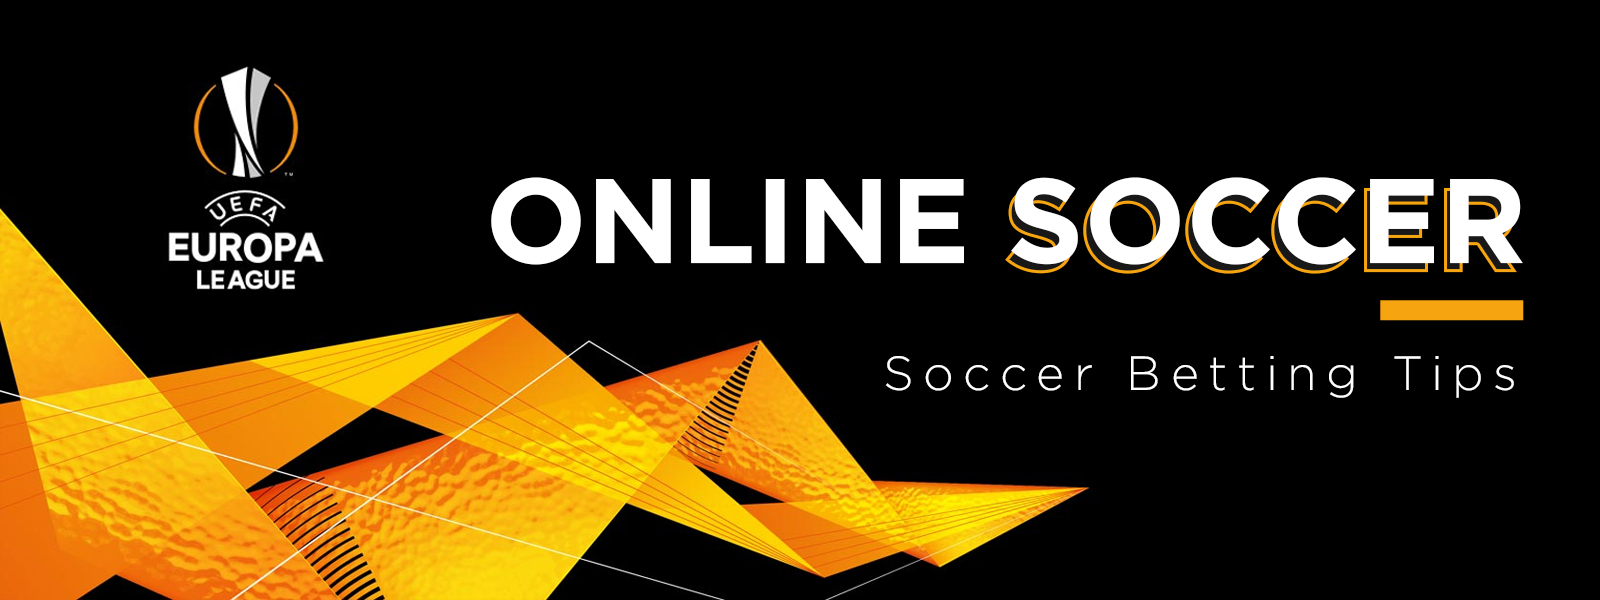 UEFA Europa League Online Soccer Betting Tips